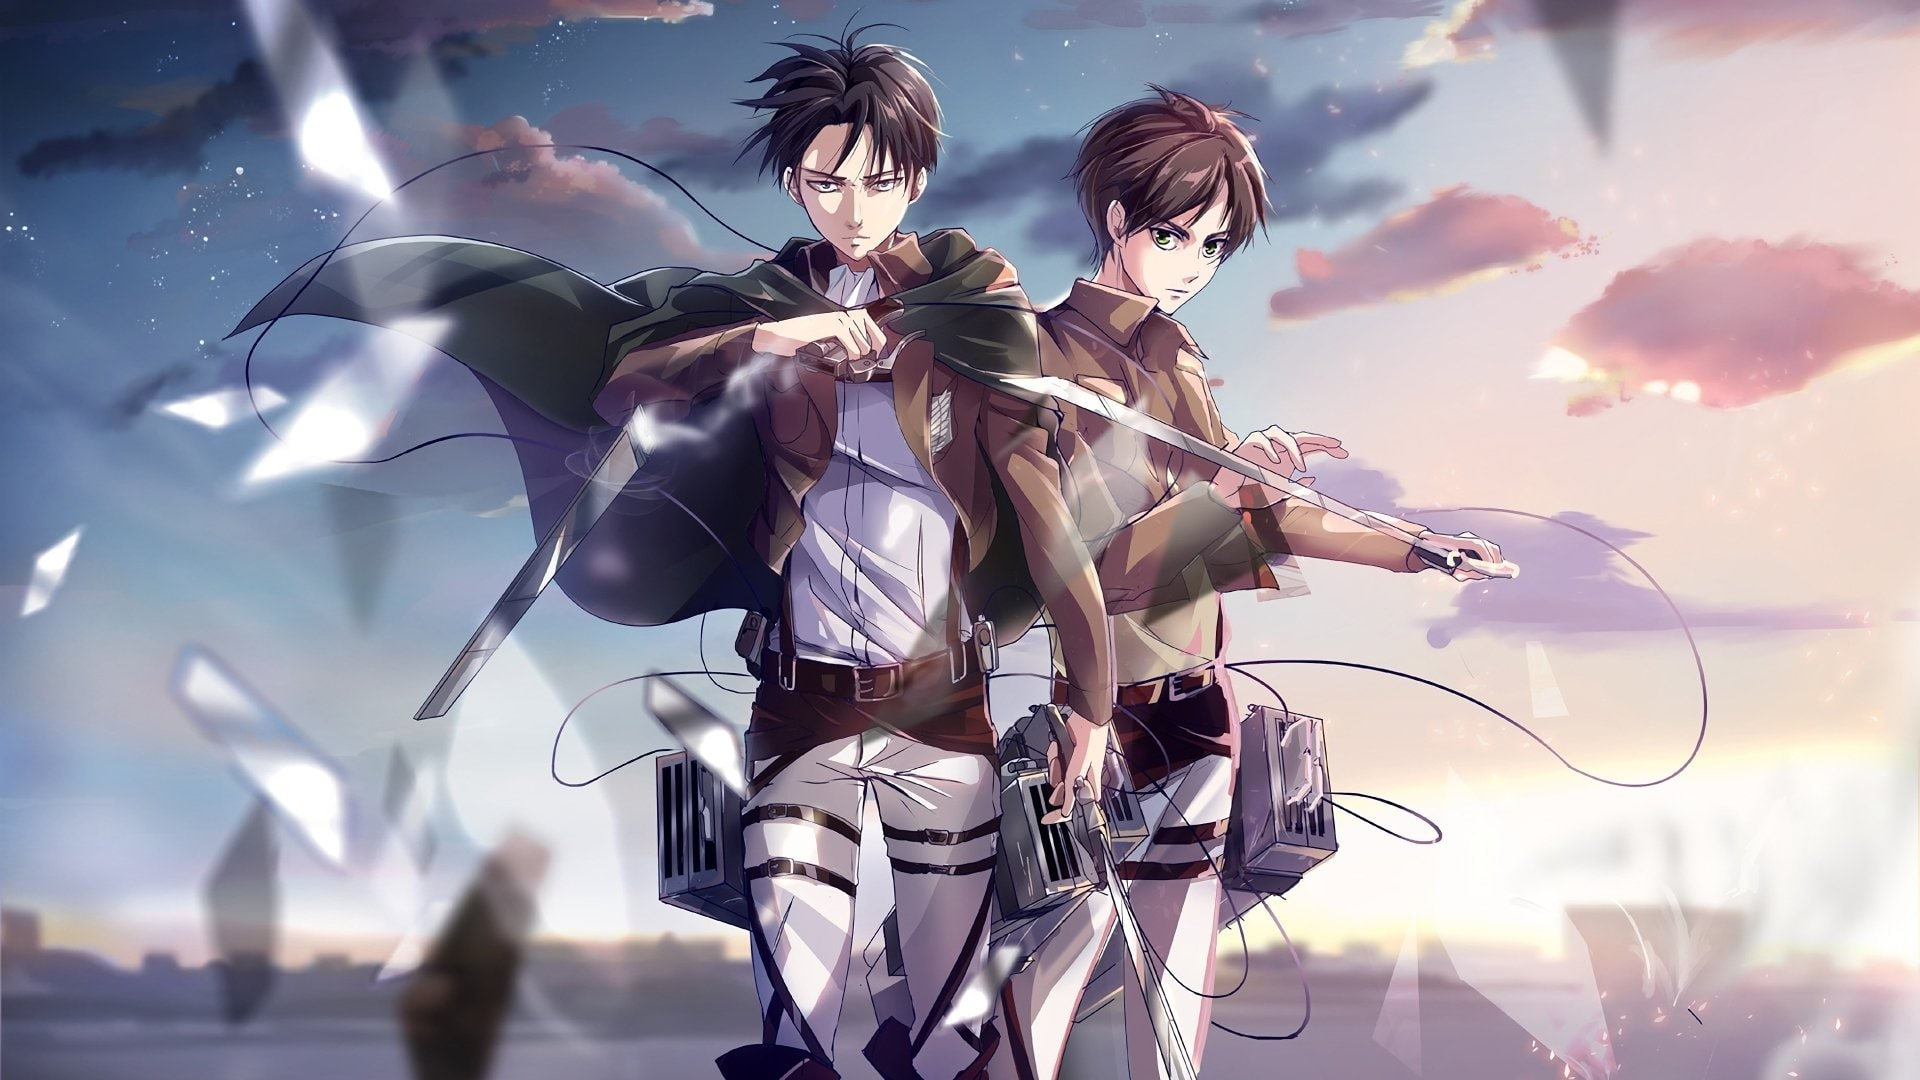 Attack on Titan Chapter 137 Official Release Date and Read Manga Online